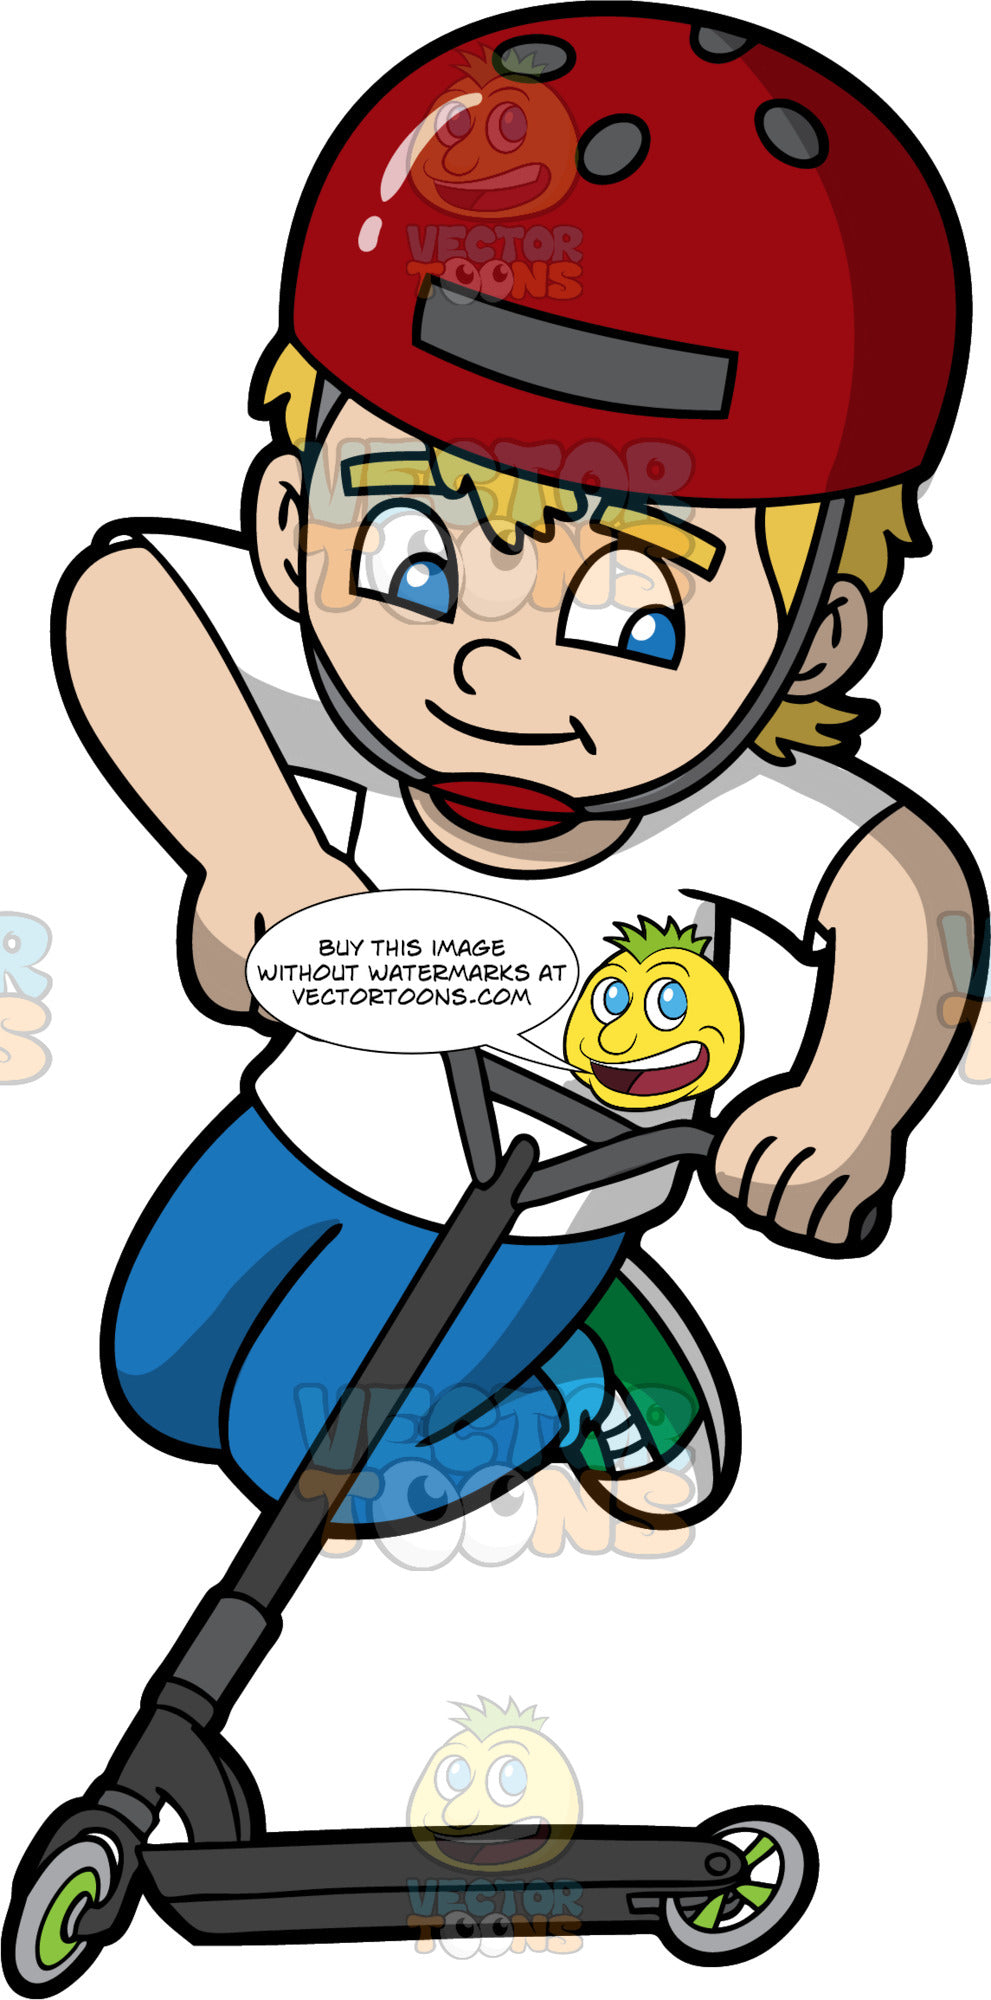 A Boy Doing A Trick While Riding A Scooter. A boy with blonde hair, wearing a red with gray helmet and chin strap, white shirt, blue pants, green with white sneakers, smiles while jumping as he rides a black scooter with gray wheels